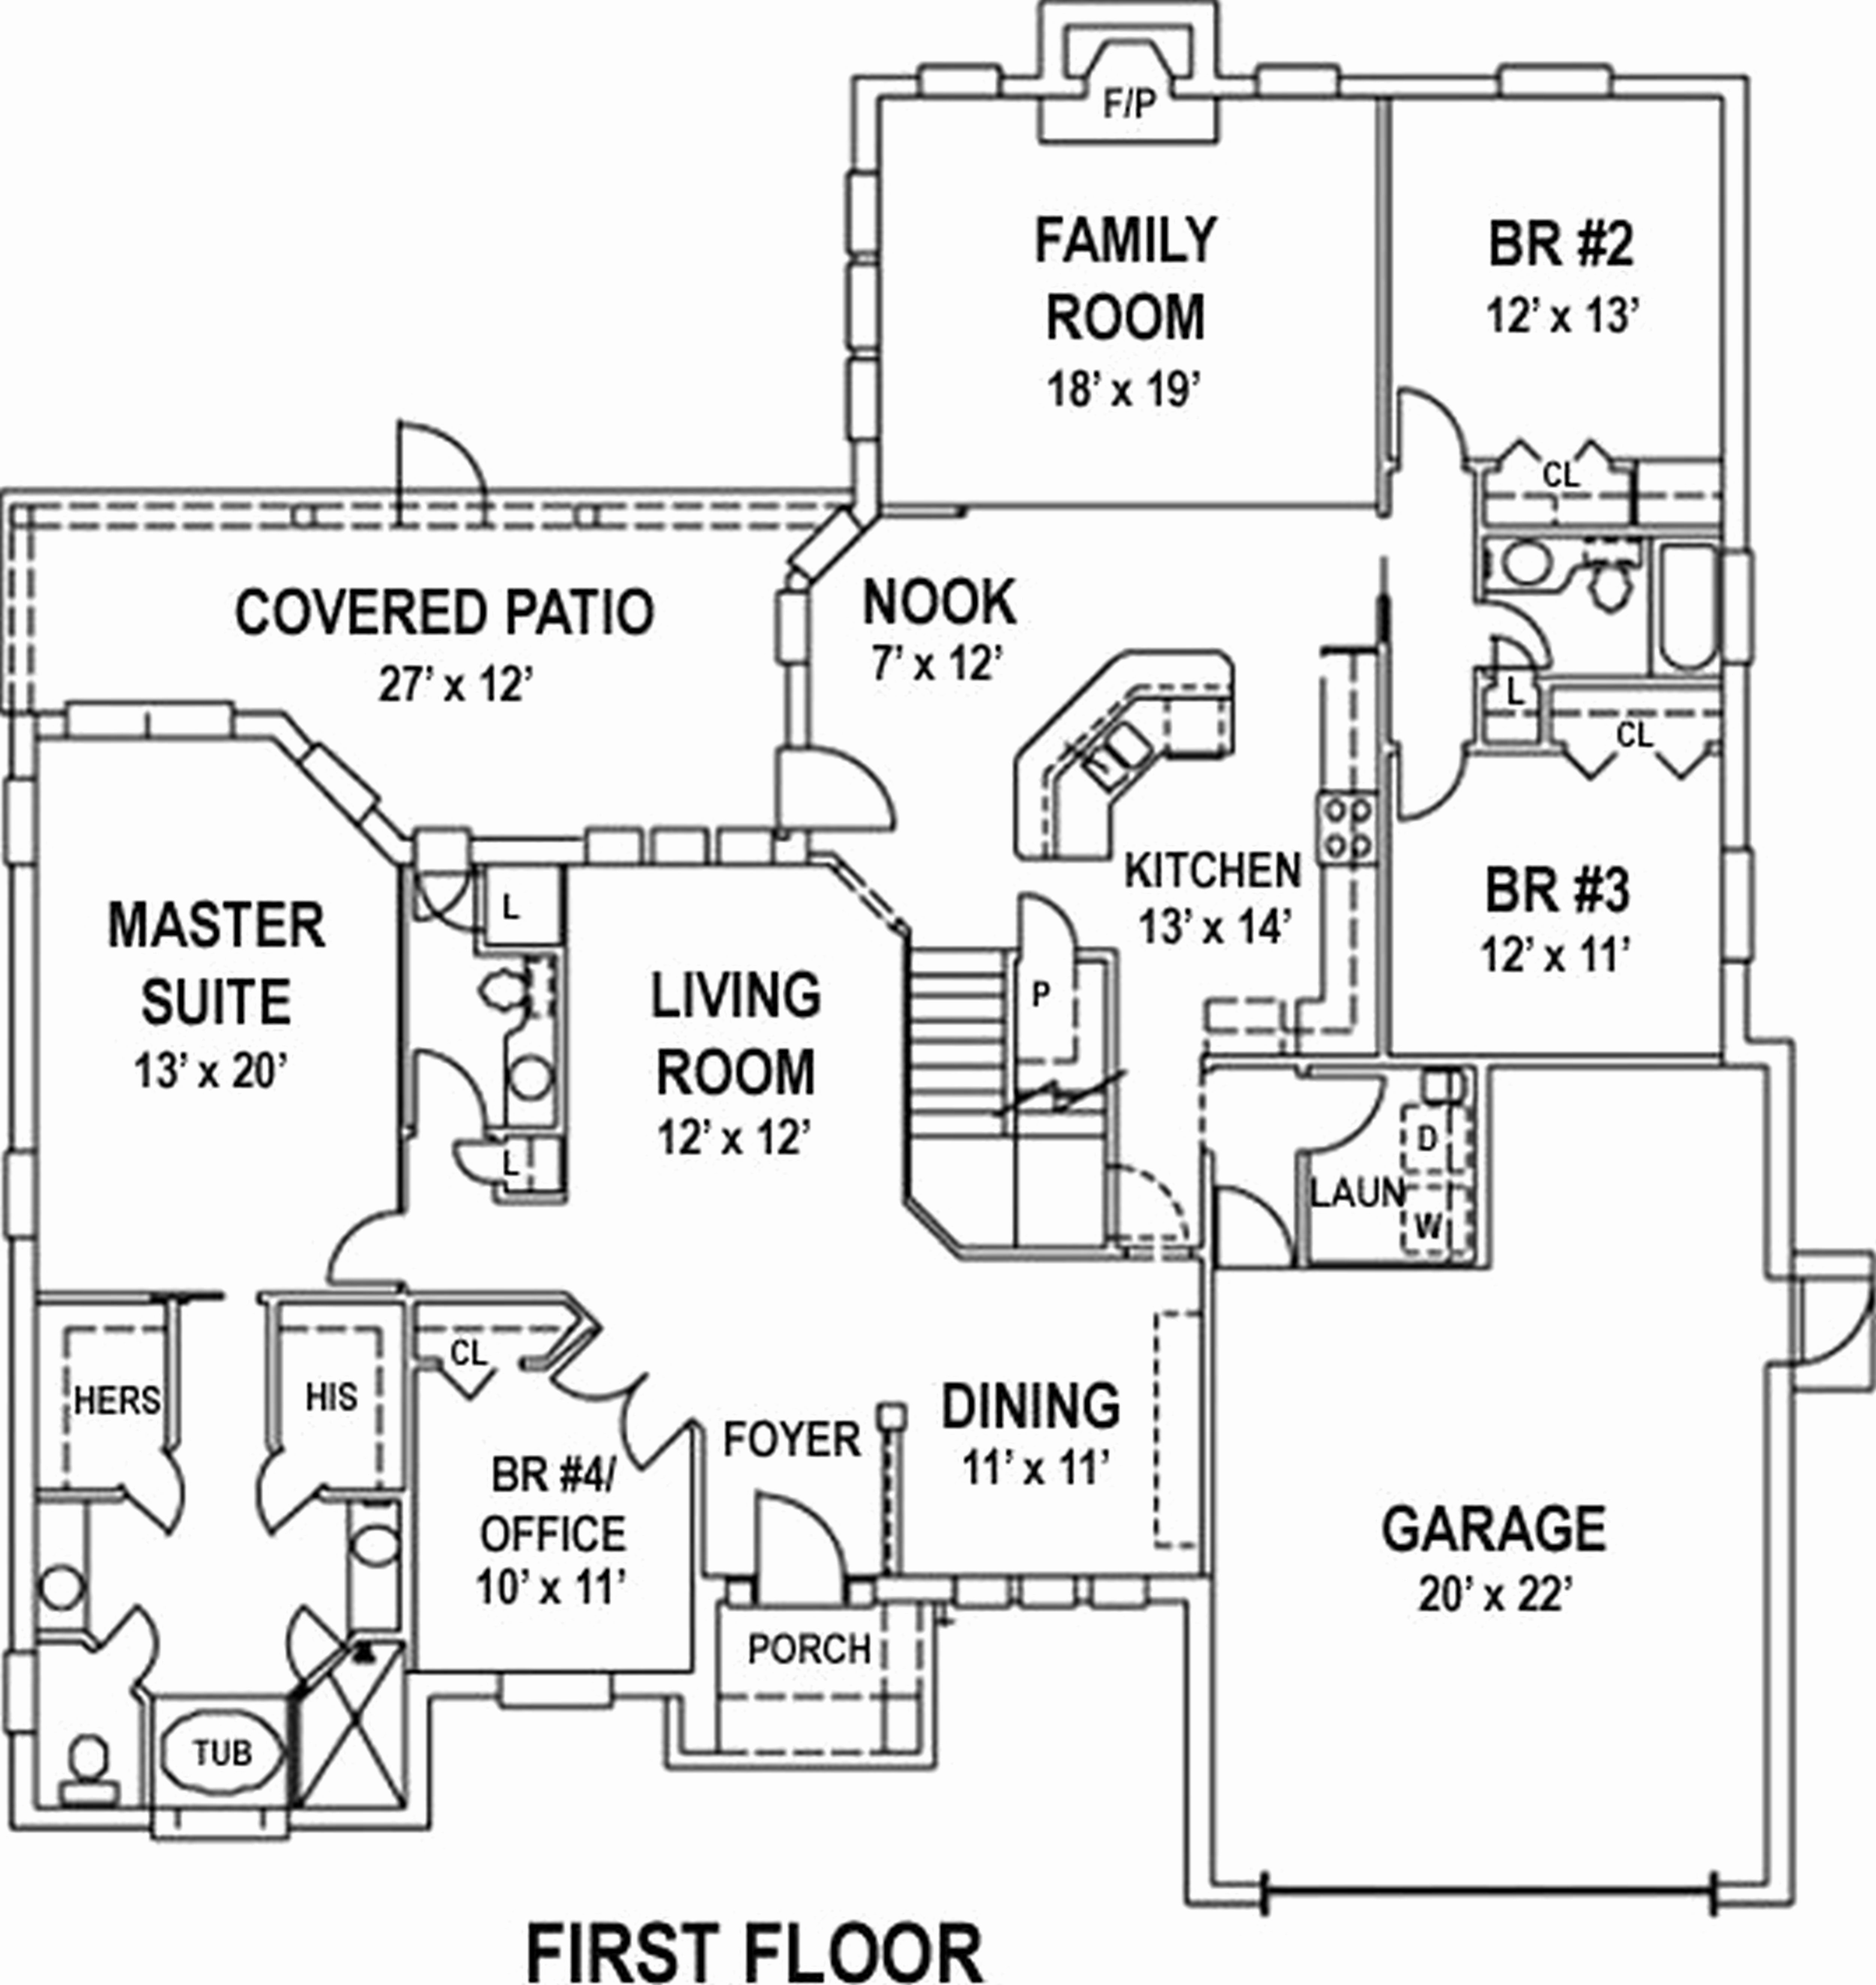 Best Simple 7 Bedroom House Plans Fresh Amazing Design Ideas 15 Simple Floorplans In 2019 With Pictures